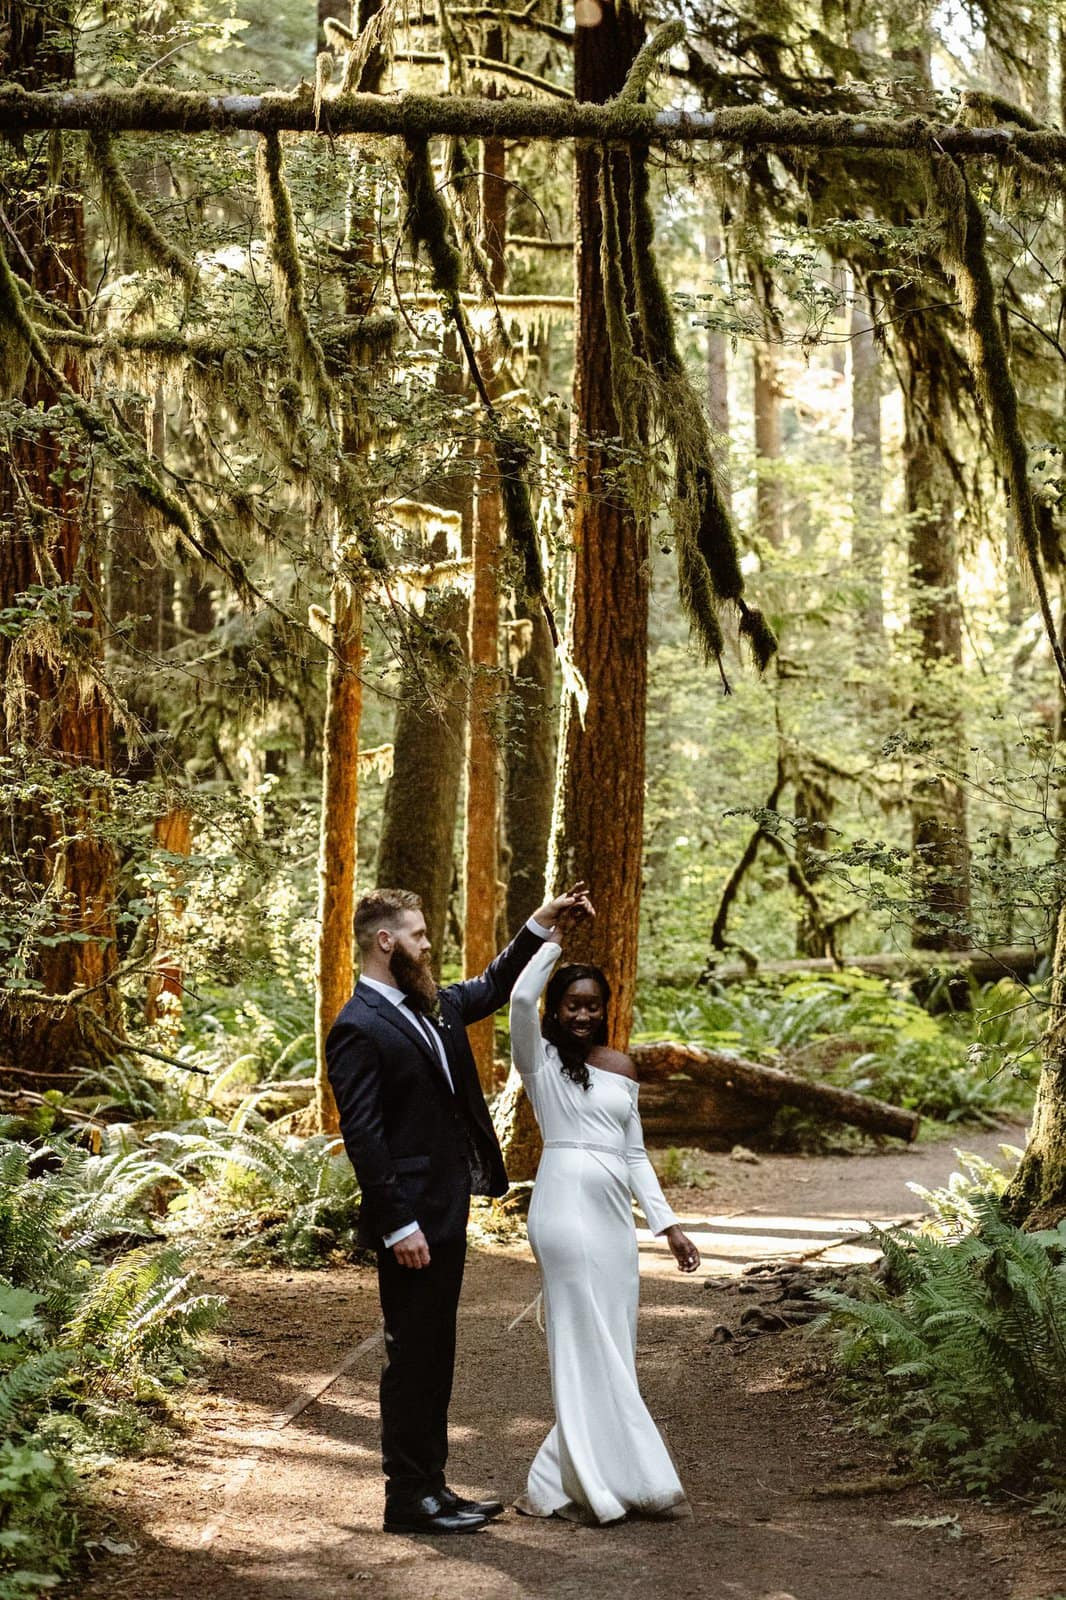 Husband and wife dance in the forest of Olympic National Park.